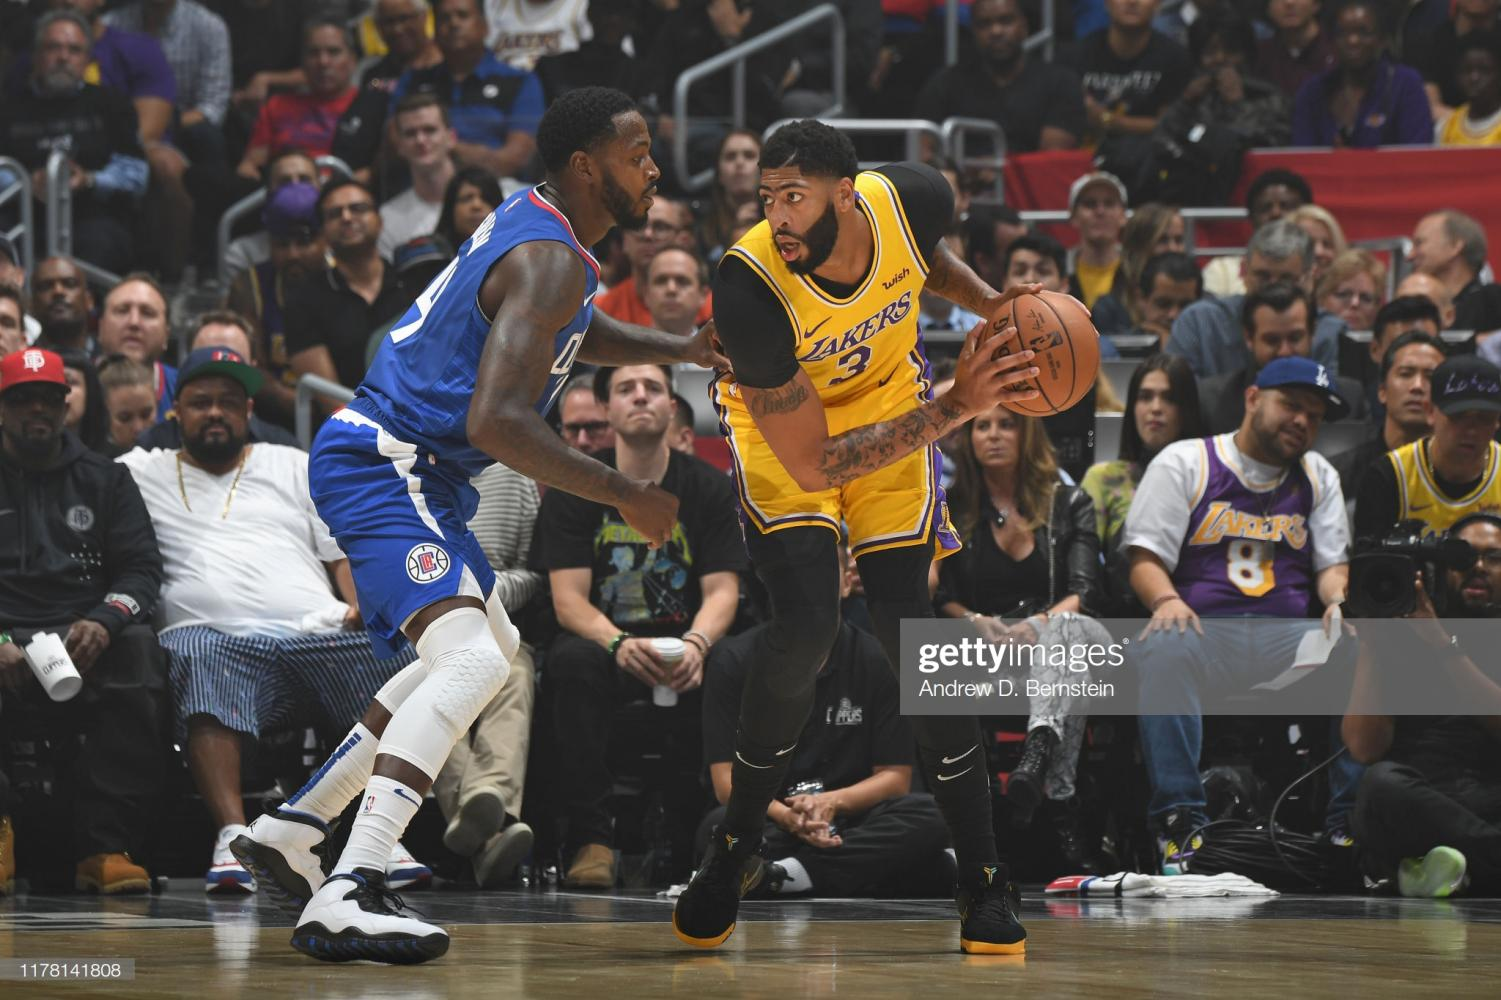 LOS ANGELES, CA - OCTOBER 22: Anthony Davis #3 of the Los Angeles Lakers handles the ball against the LA Clippers on October 22, 2019 at STAPLES Center in Los Angeles, California. NOTE TO USER: User expressly acknowledges and agrees that, by downloading and/or using this Photograph, user is consenting to the terms and conditions of the Getty Images License Agreement. Mandatory Copyright Notice